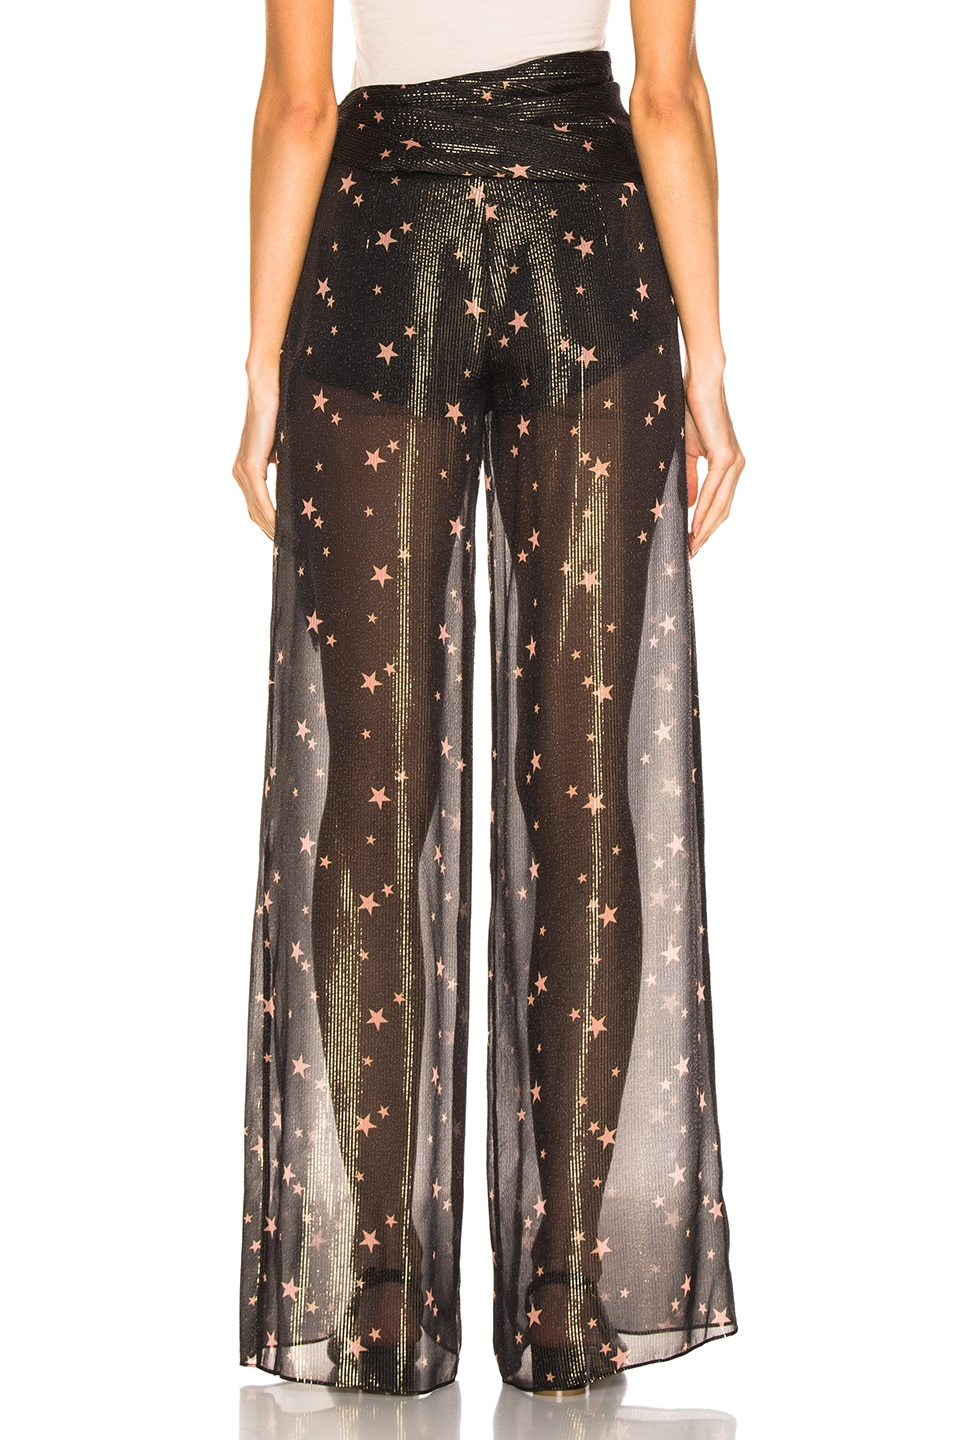 Image 3 of JONATHAN SIMKHAI for FWRD Tie Waist Sheer Pant in Star Print